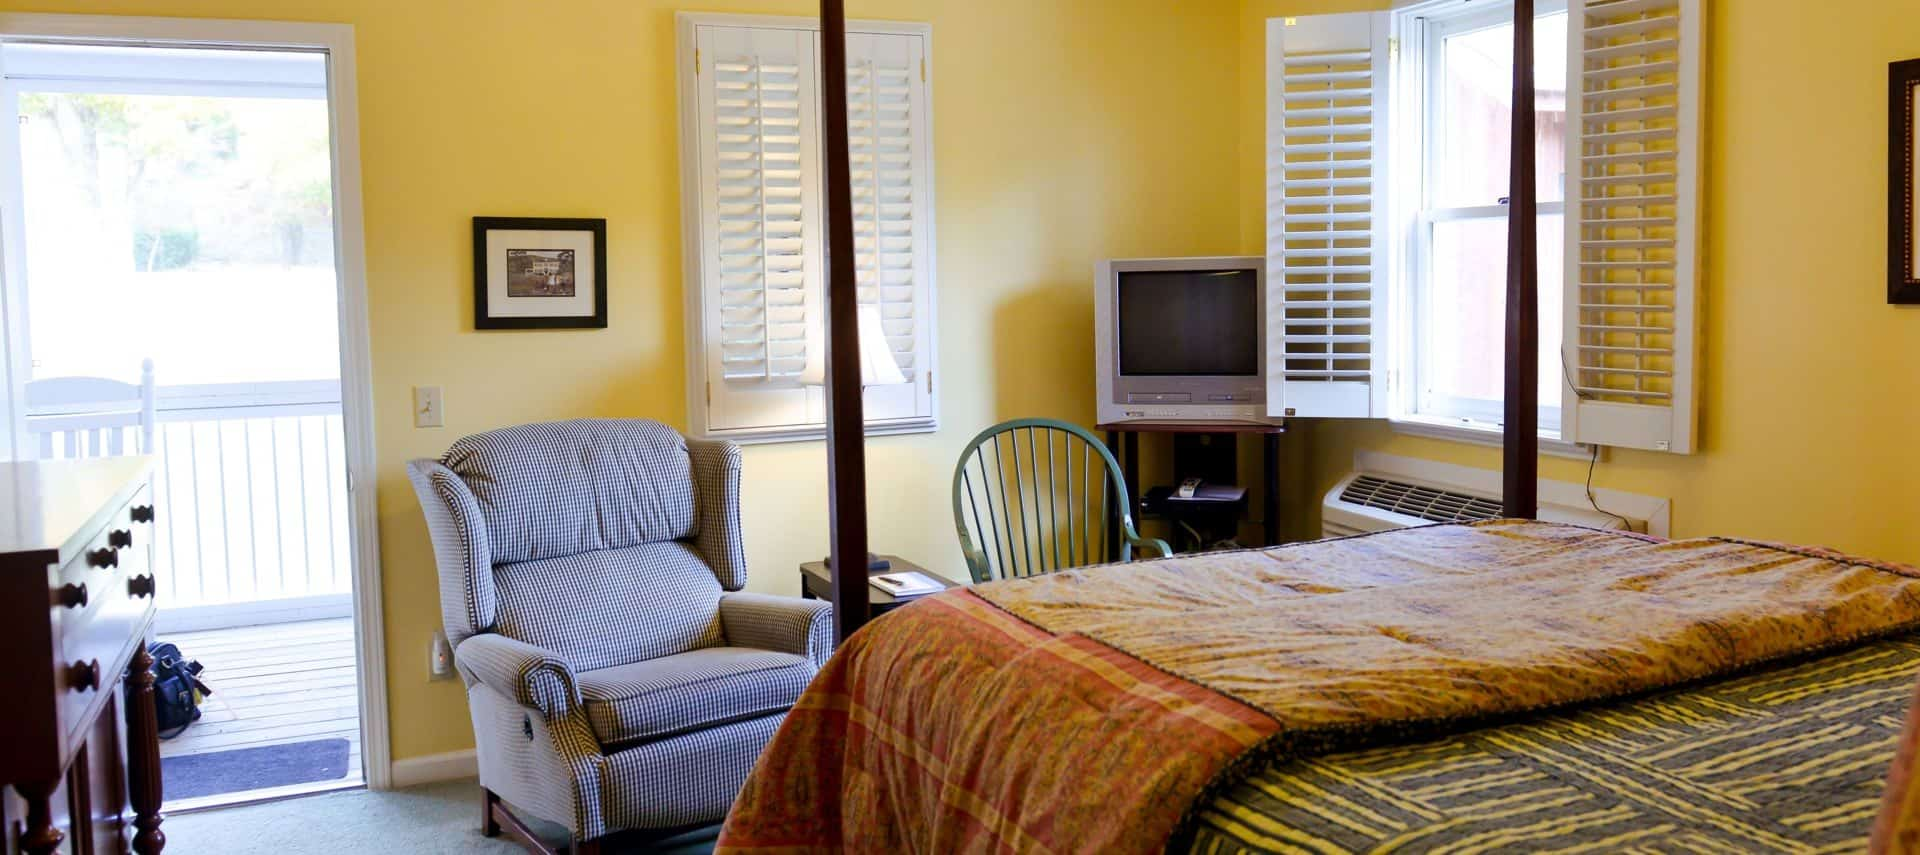 Bedroom painted yellow with dark wooden four-post bed